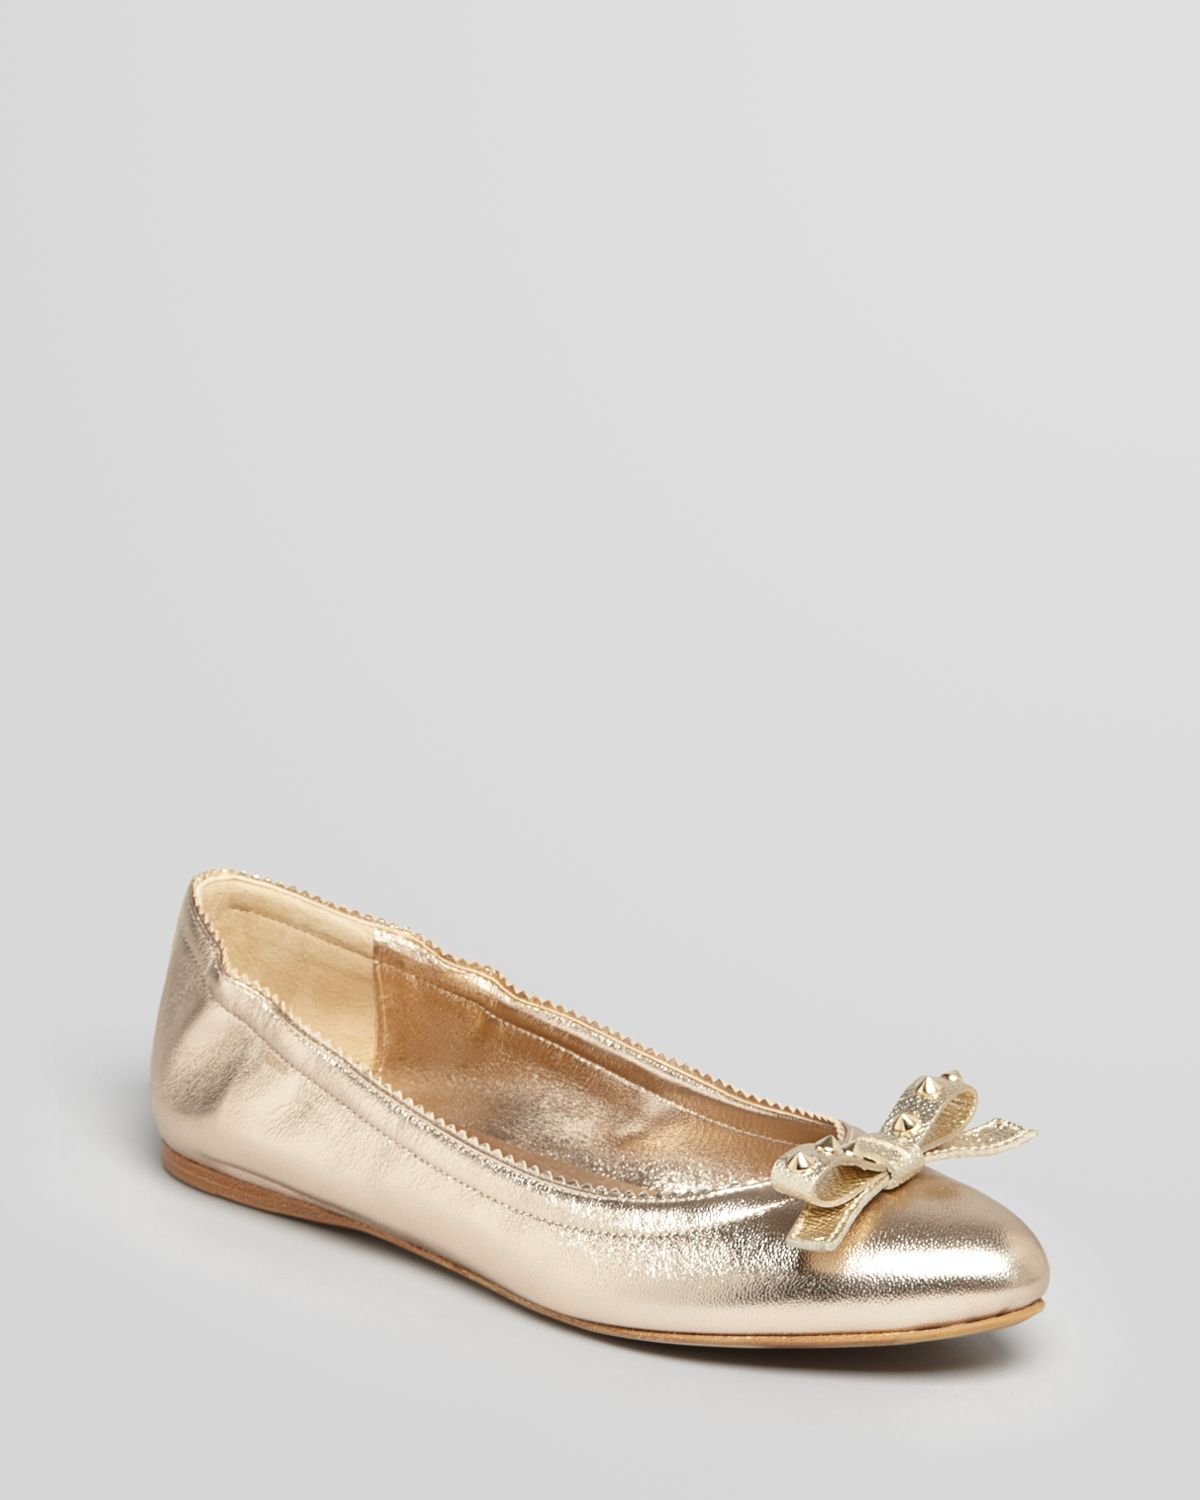 Burberry Pointed Toe Ballet Flats Stainfeld in Gold (metallic trench